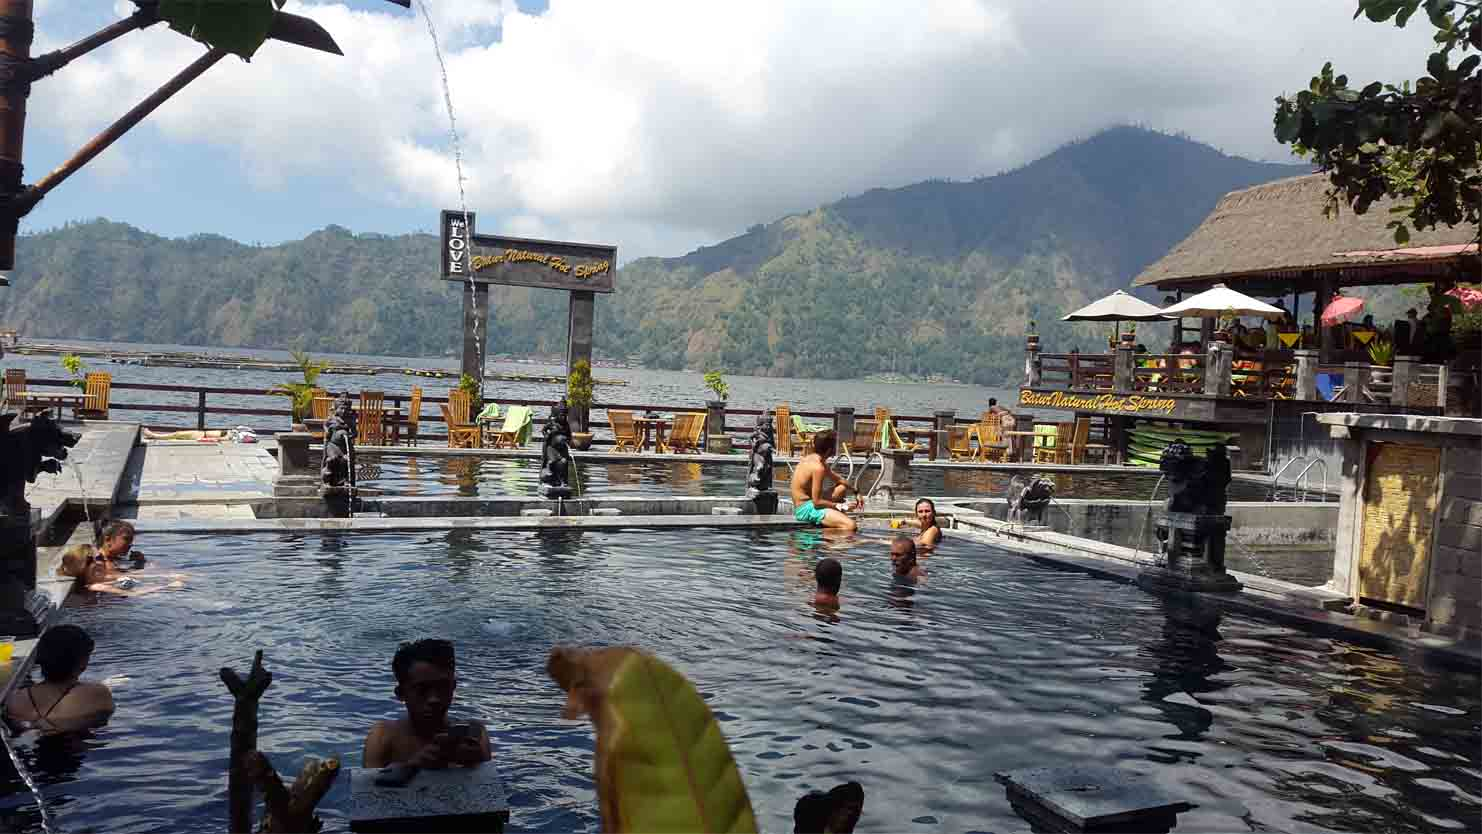 Bali natural hot springs